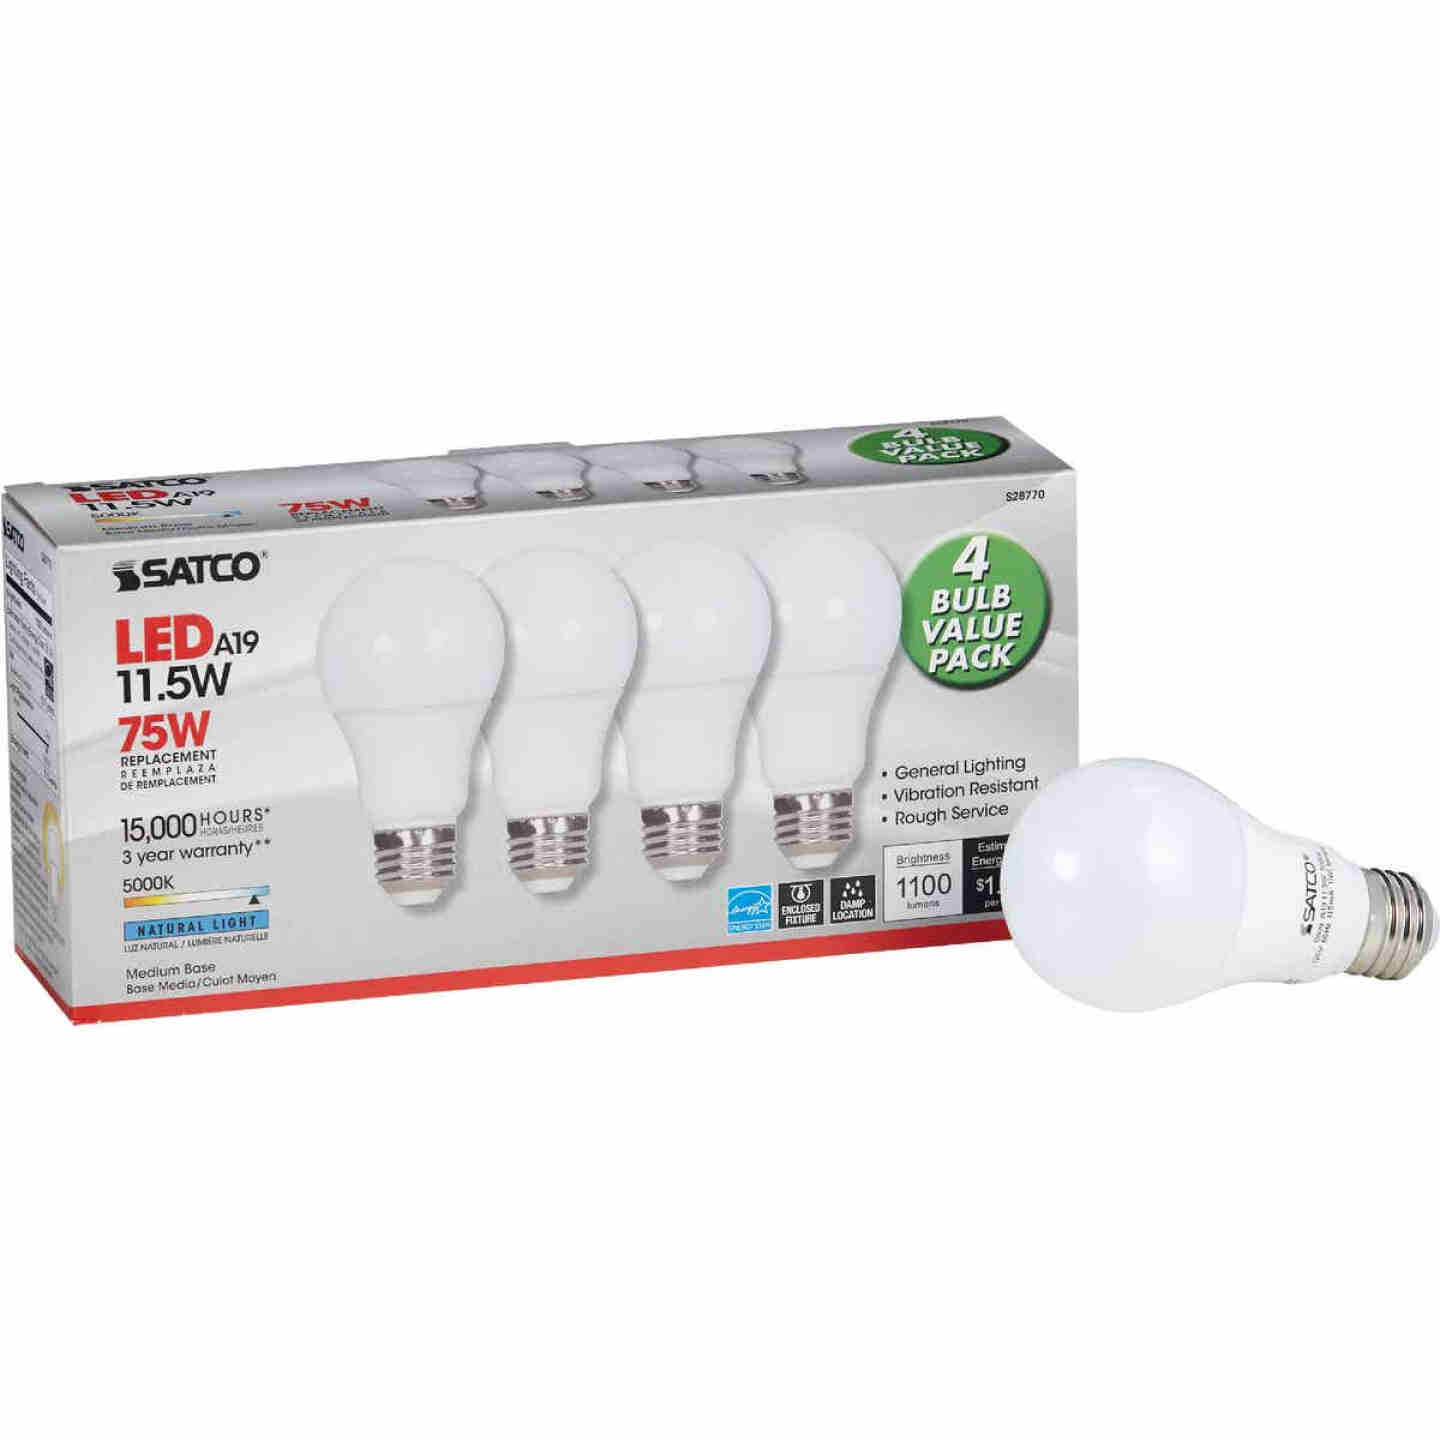 Satco 75W Equivalent Natural Light A19 Medium LED Light Bulb (4-Pack) Image 1